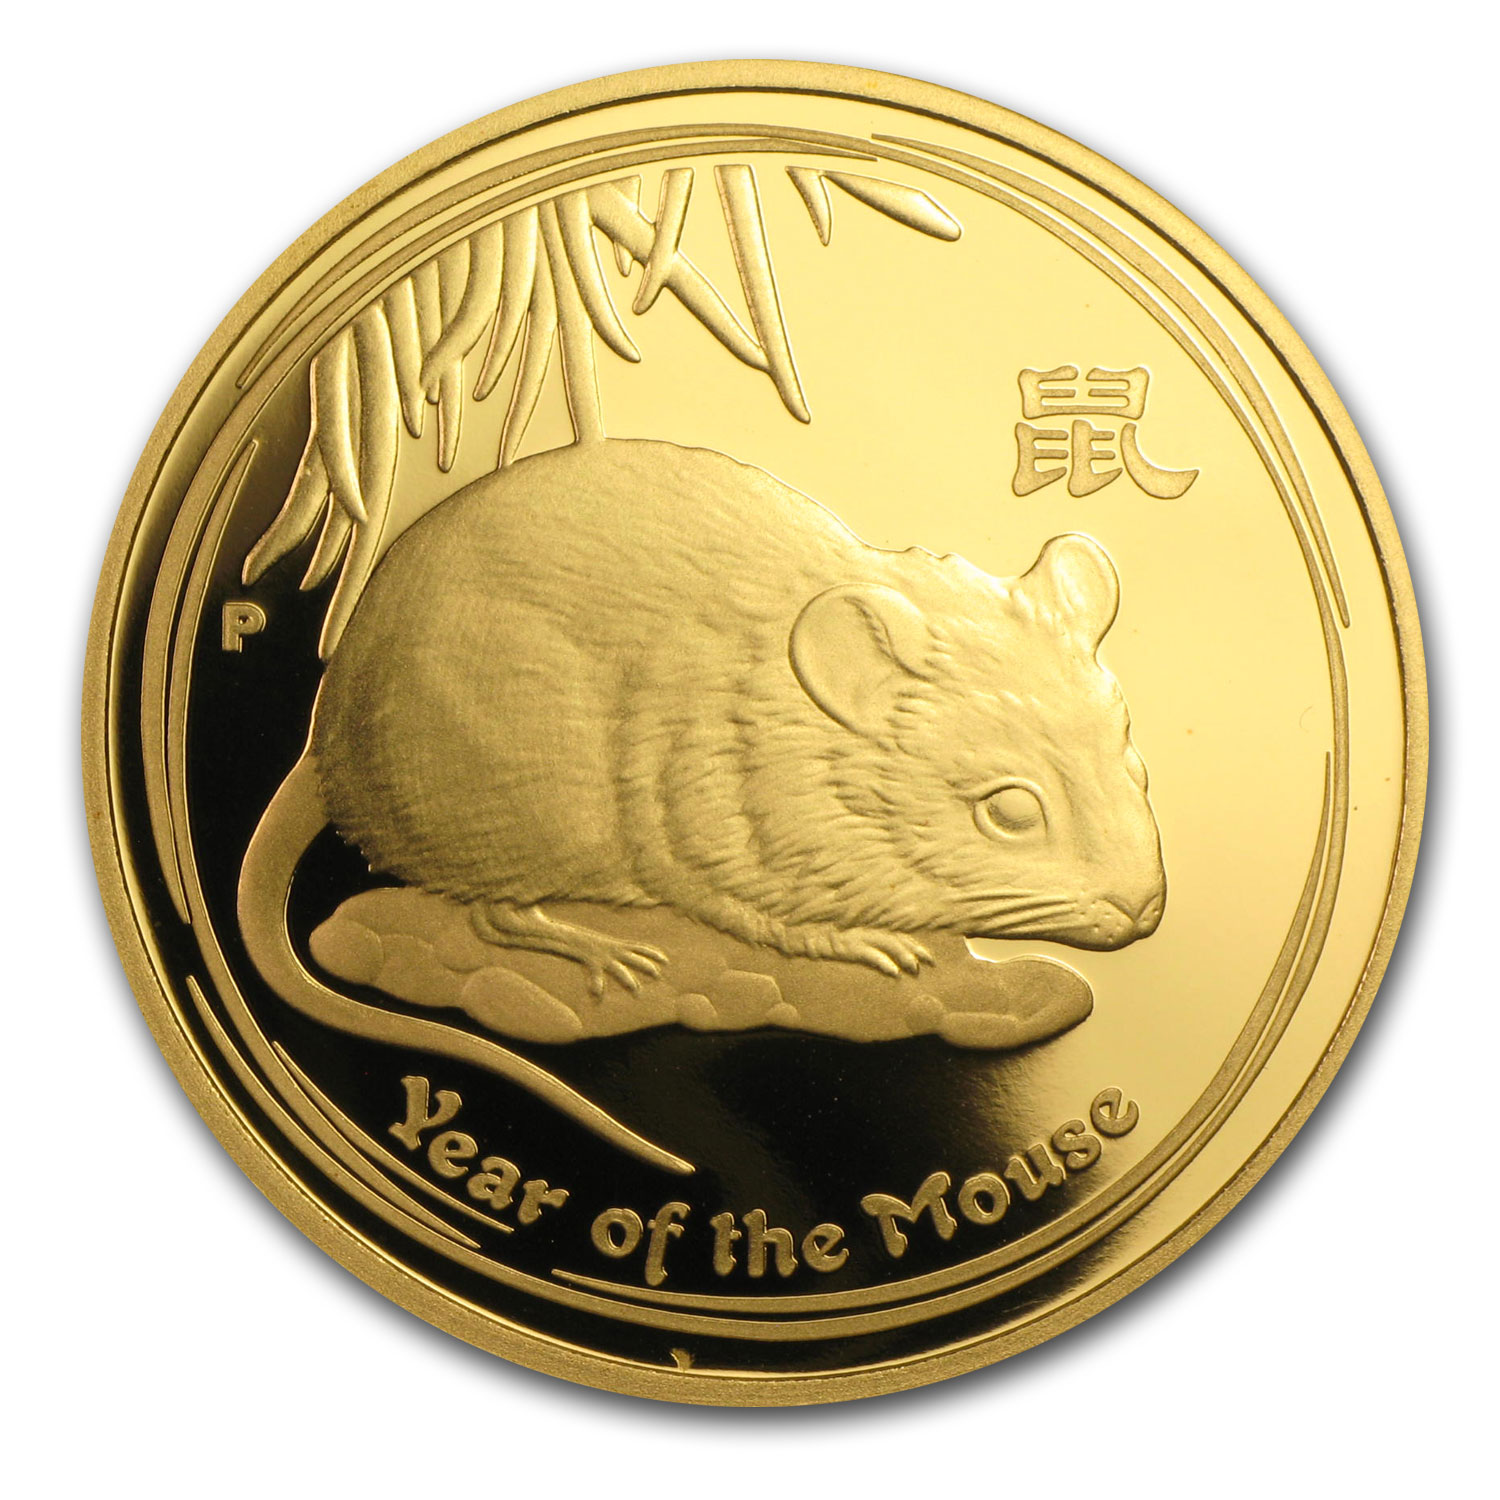 2008 1 oz Gold Lunar Year of the Mouse Proof (Series II)